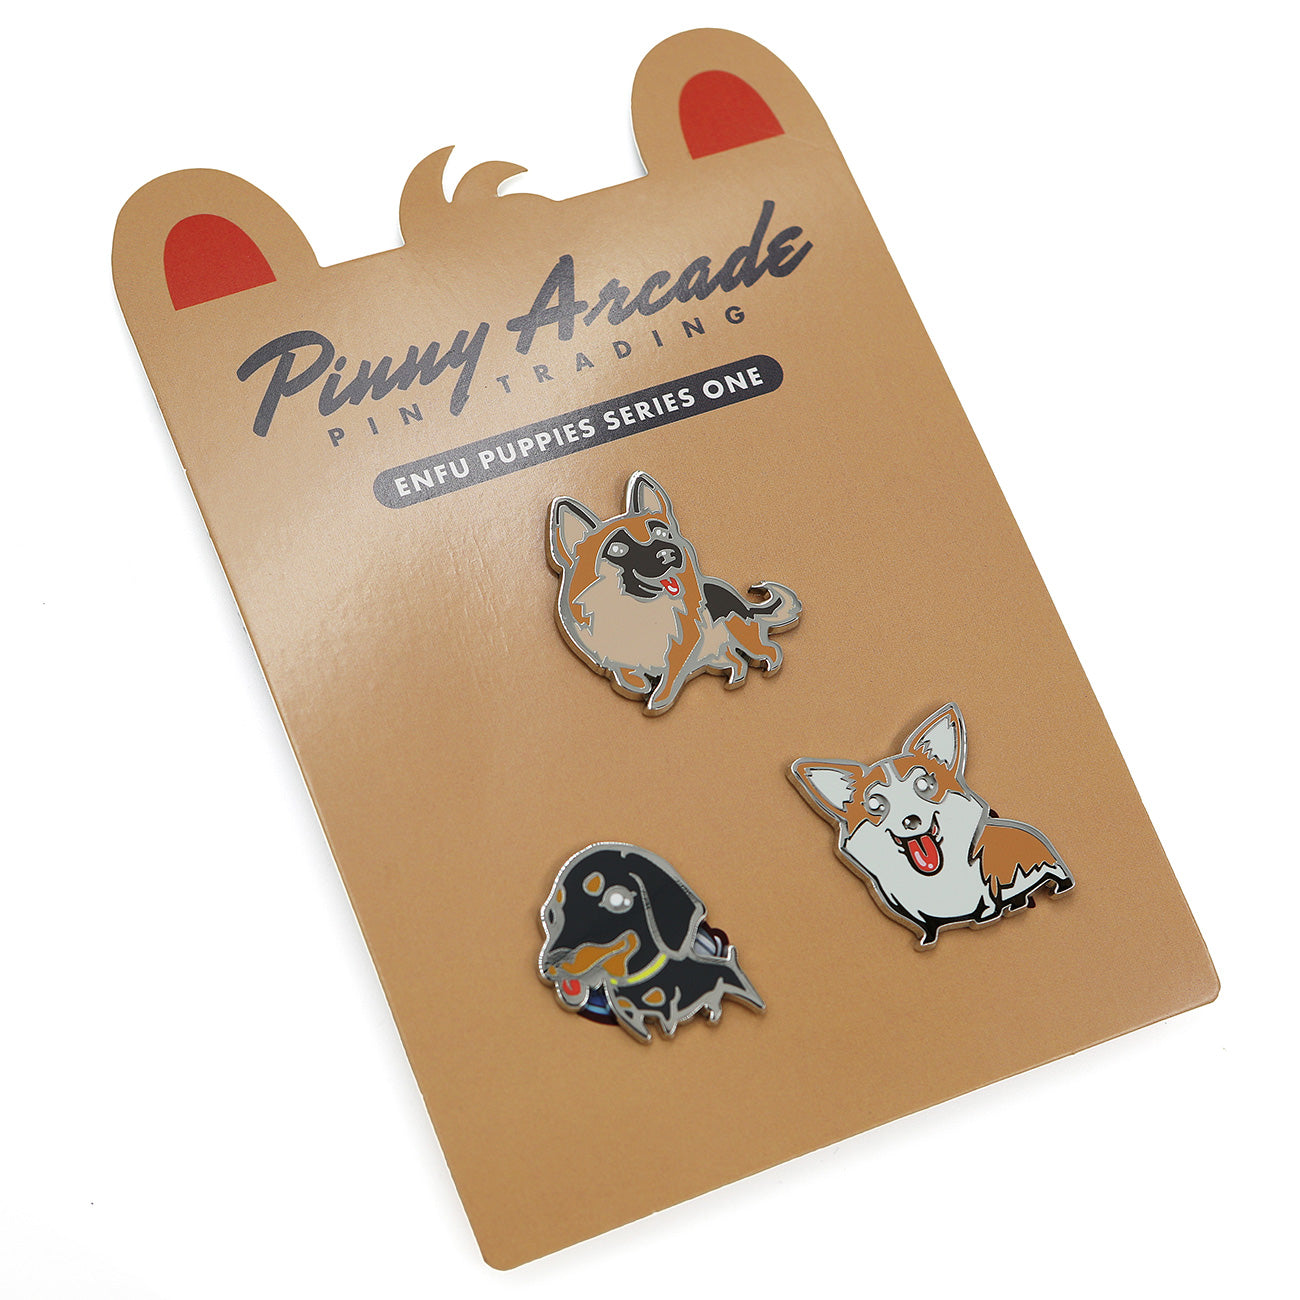 Enfu Puppies Series 1 Pin Set